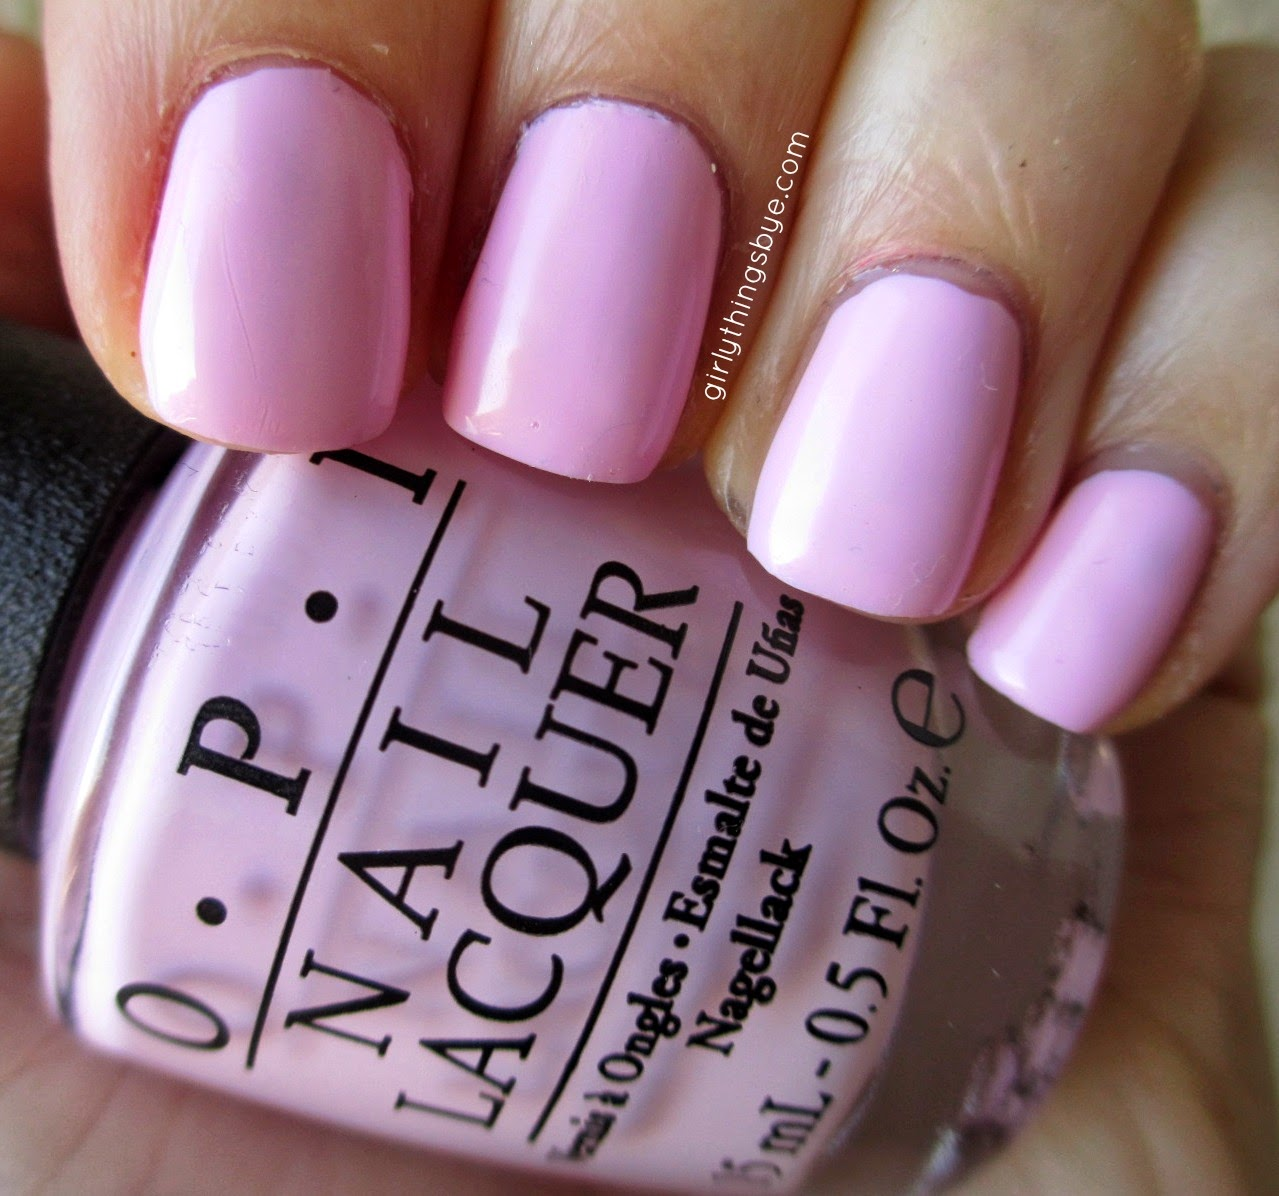 OPI Mod About You, @girlythingsby_e, swatch